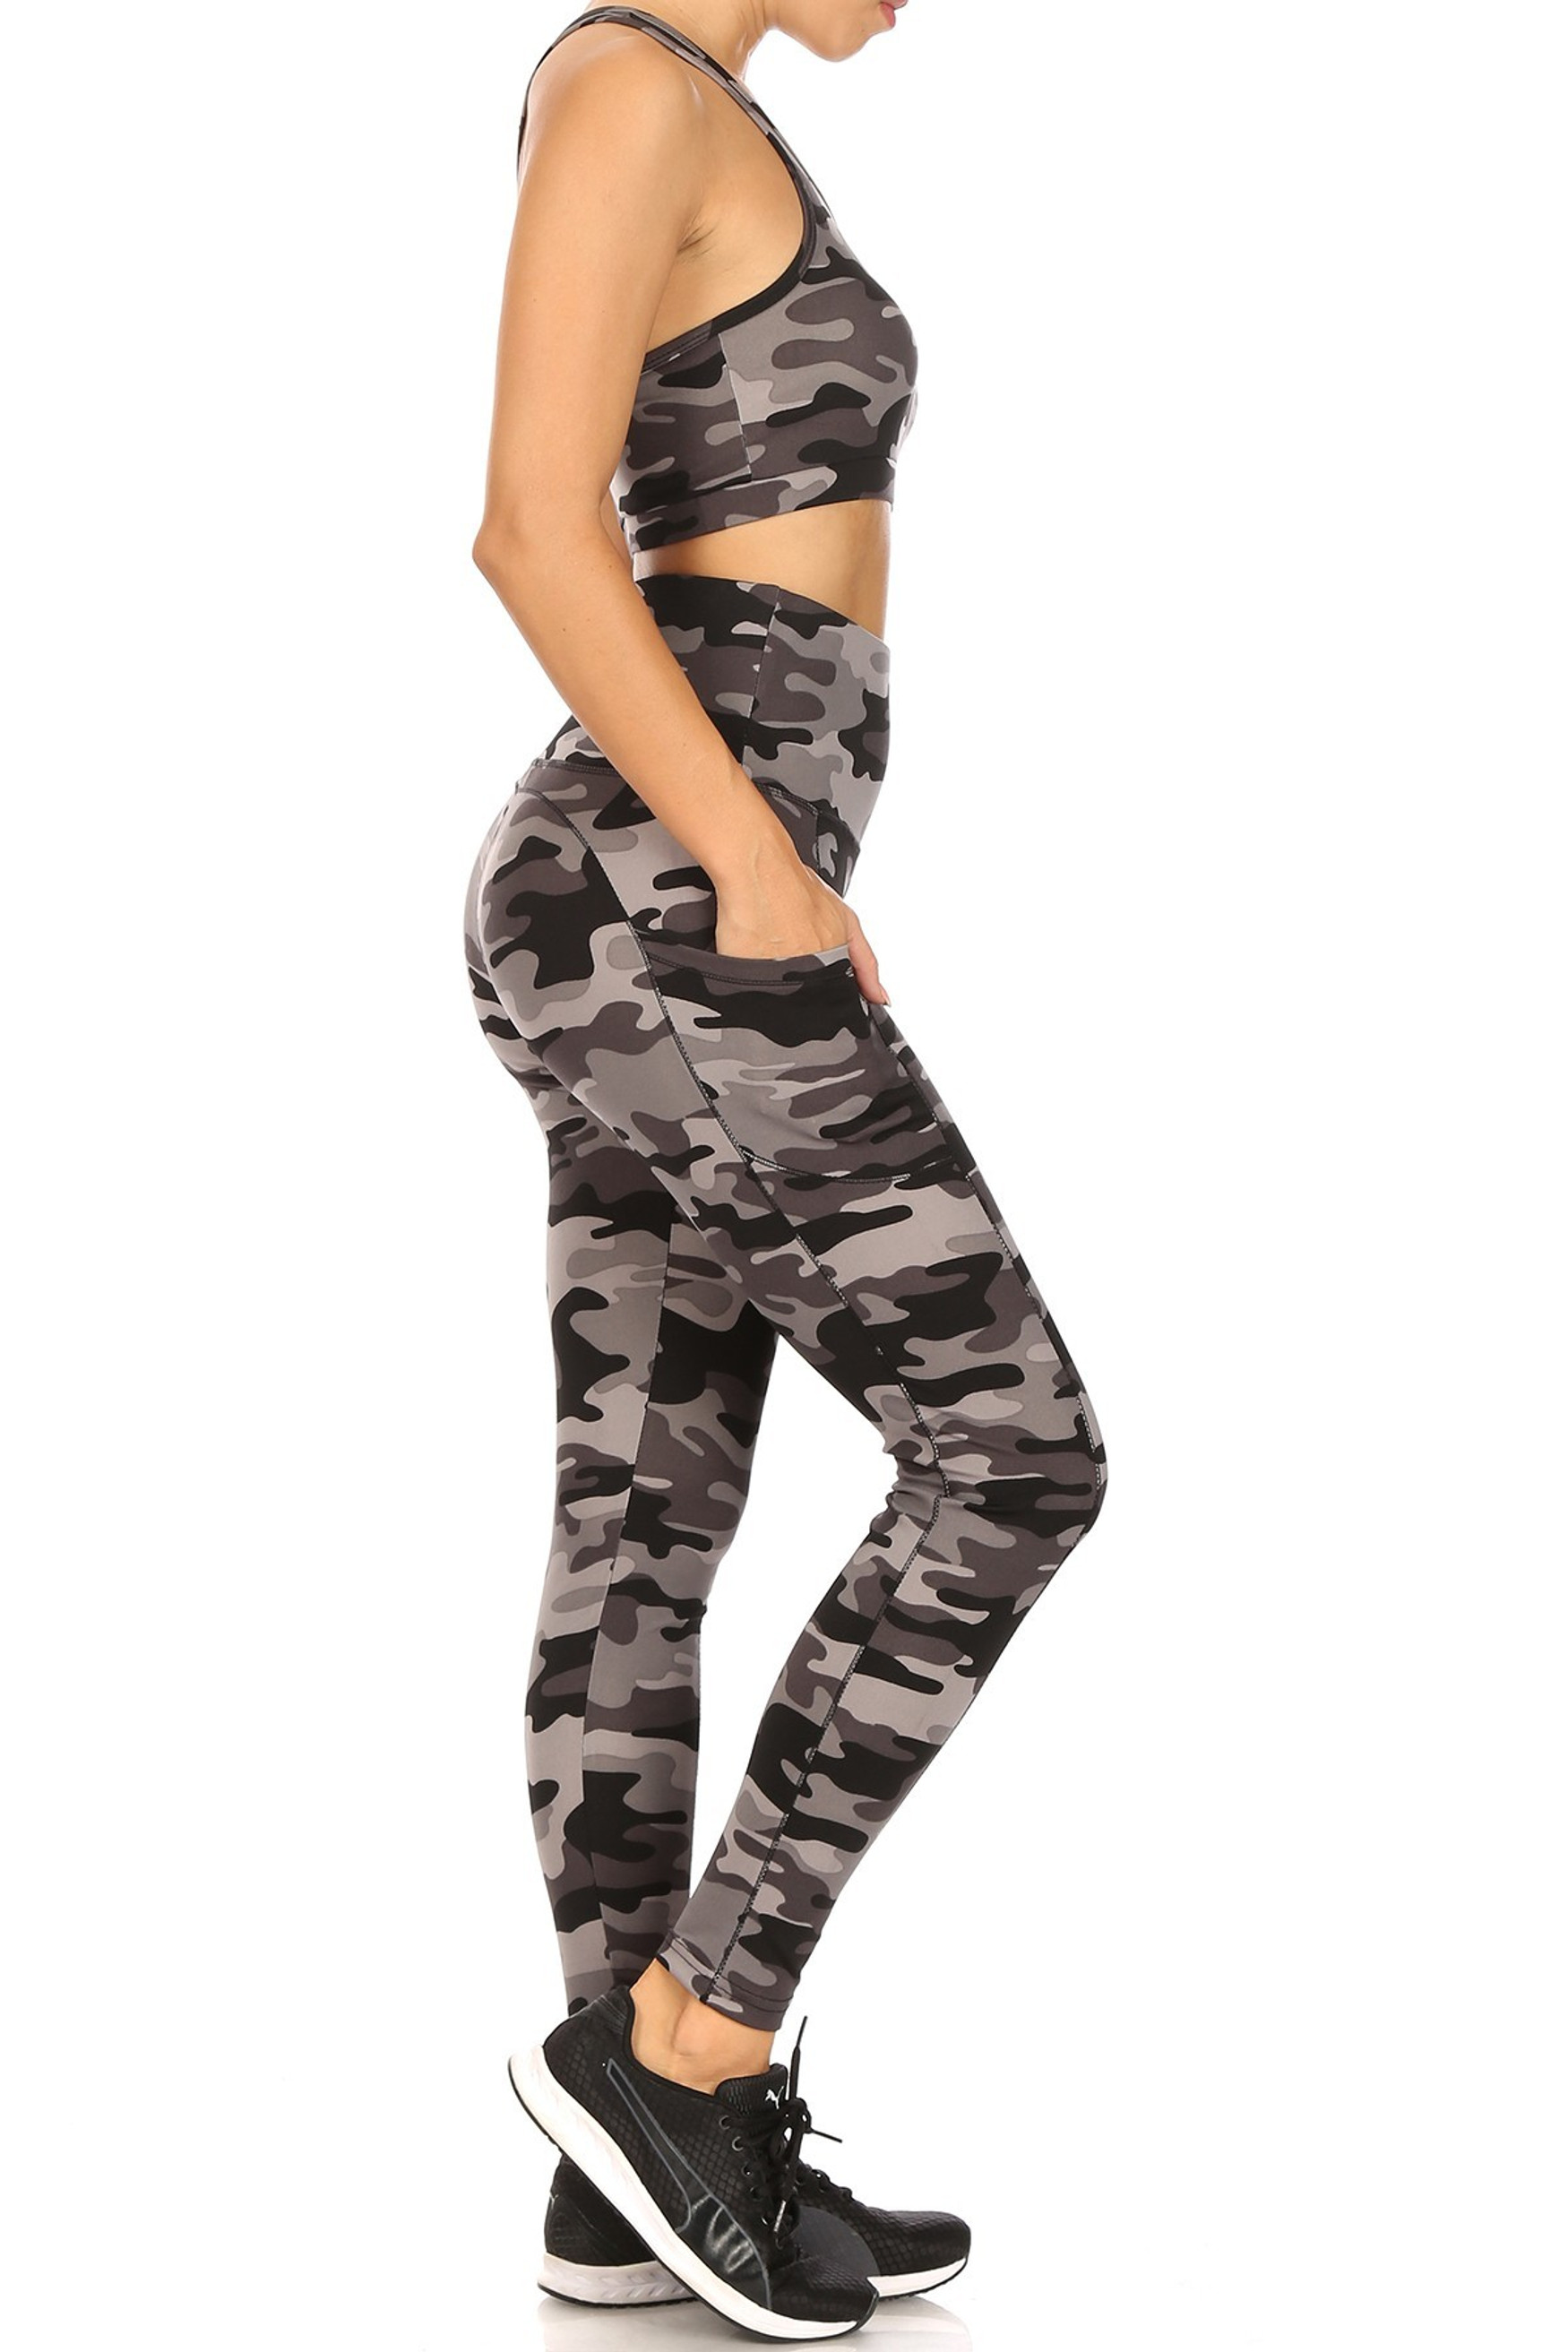 2 Piece Charcoal Camouflage Crop Top and Legging Set